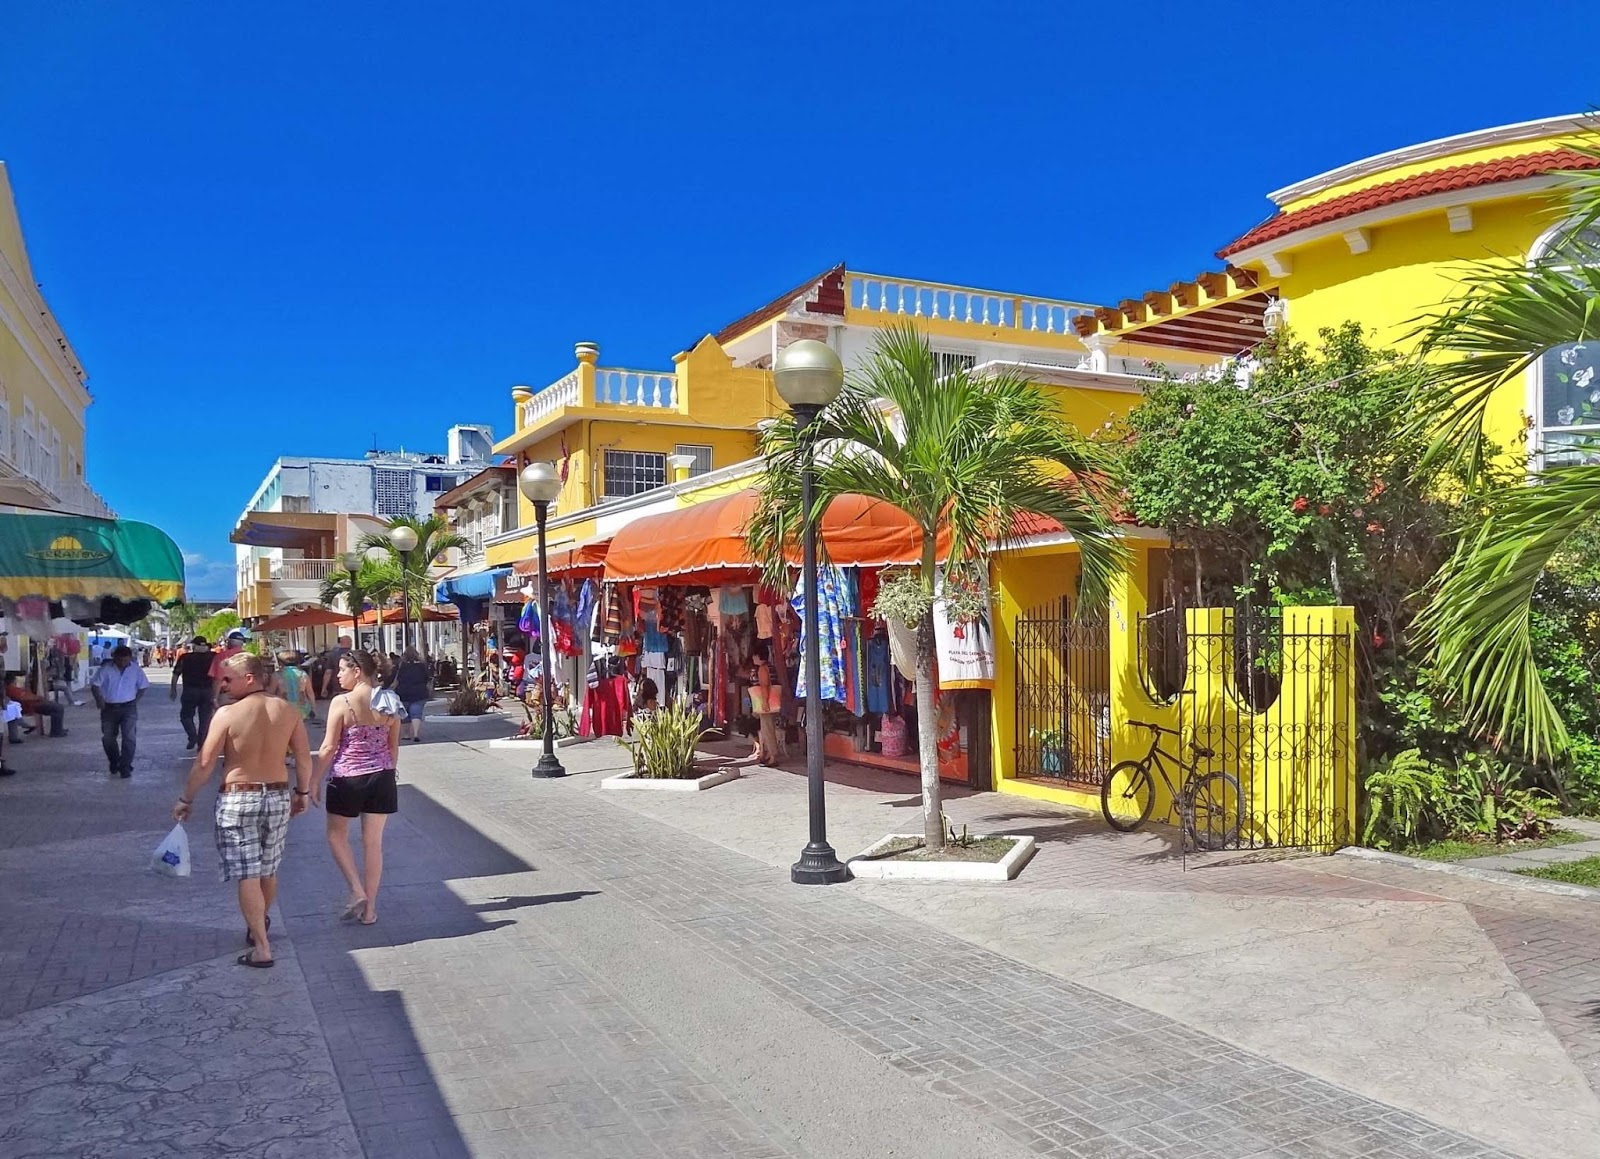 Tourism Info - This is Cozumel